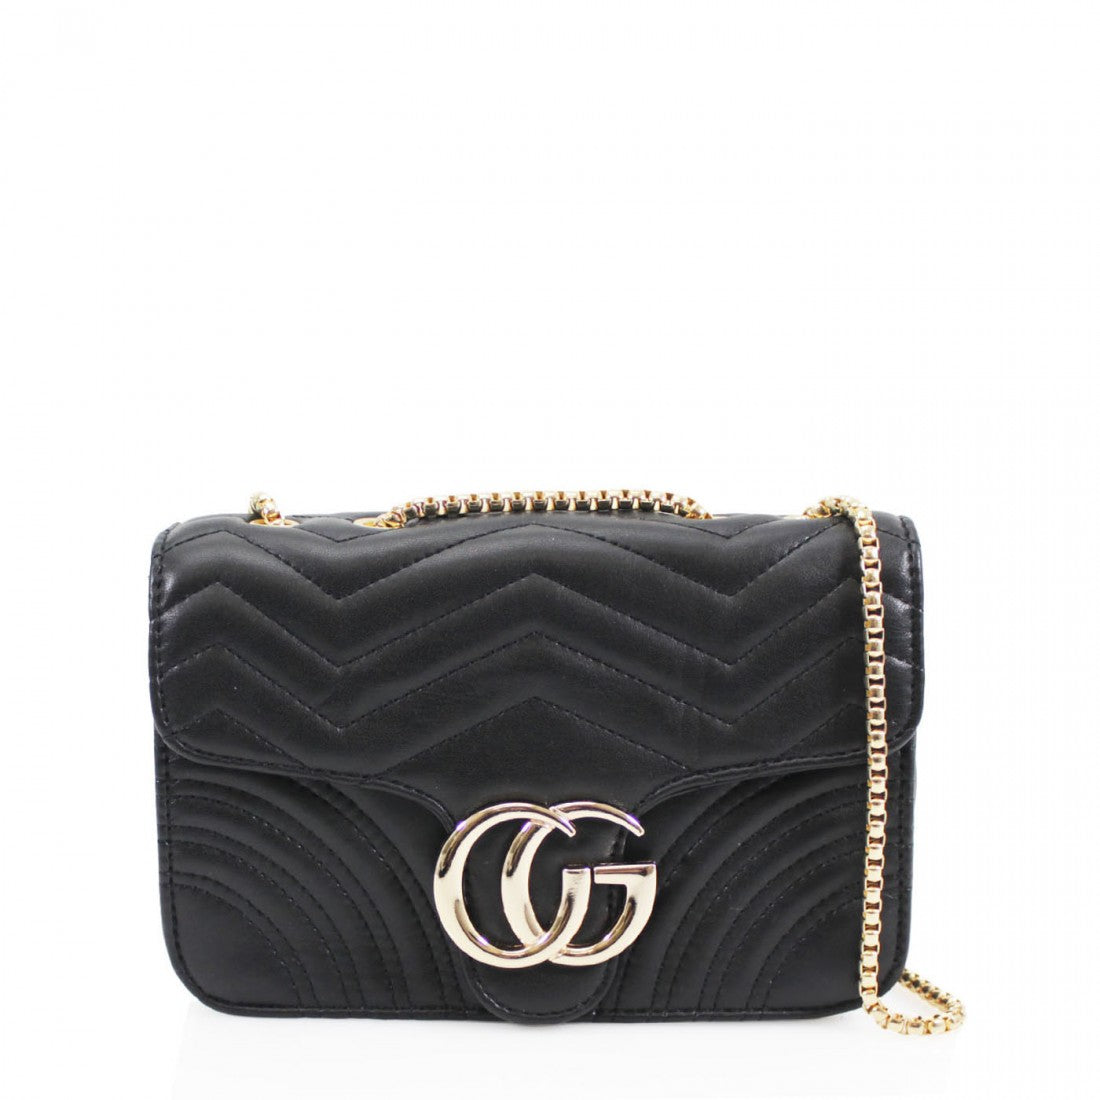 3d8418550 Talia Crossbody Gucci Inspired Marmont Bag - Black – Style Of Beyond